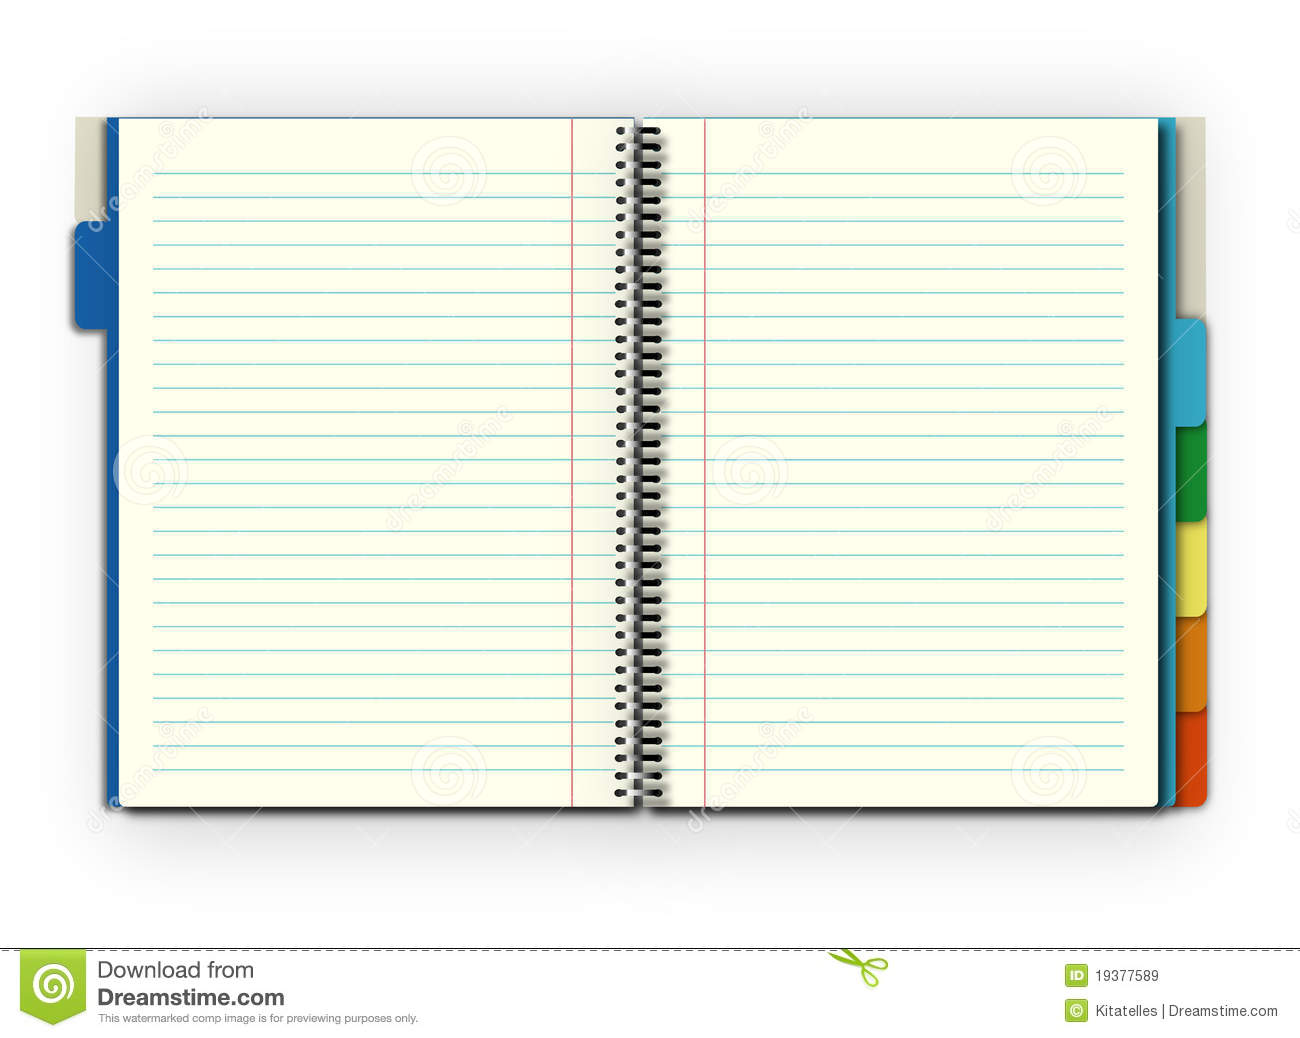 Open Notebook Royalty Free Stock Images - Image: 19377589